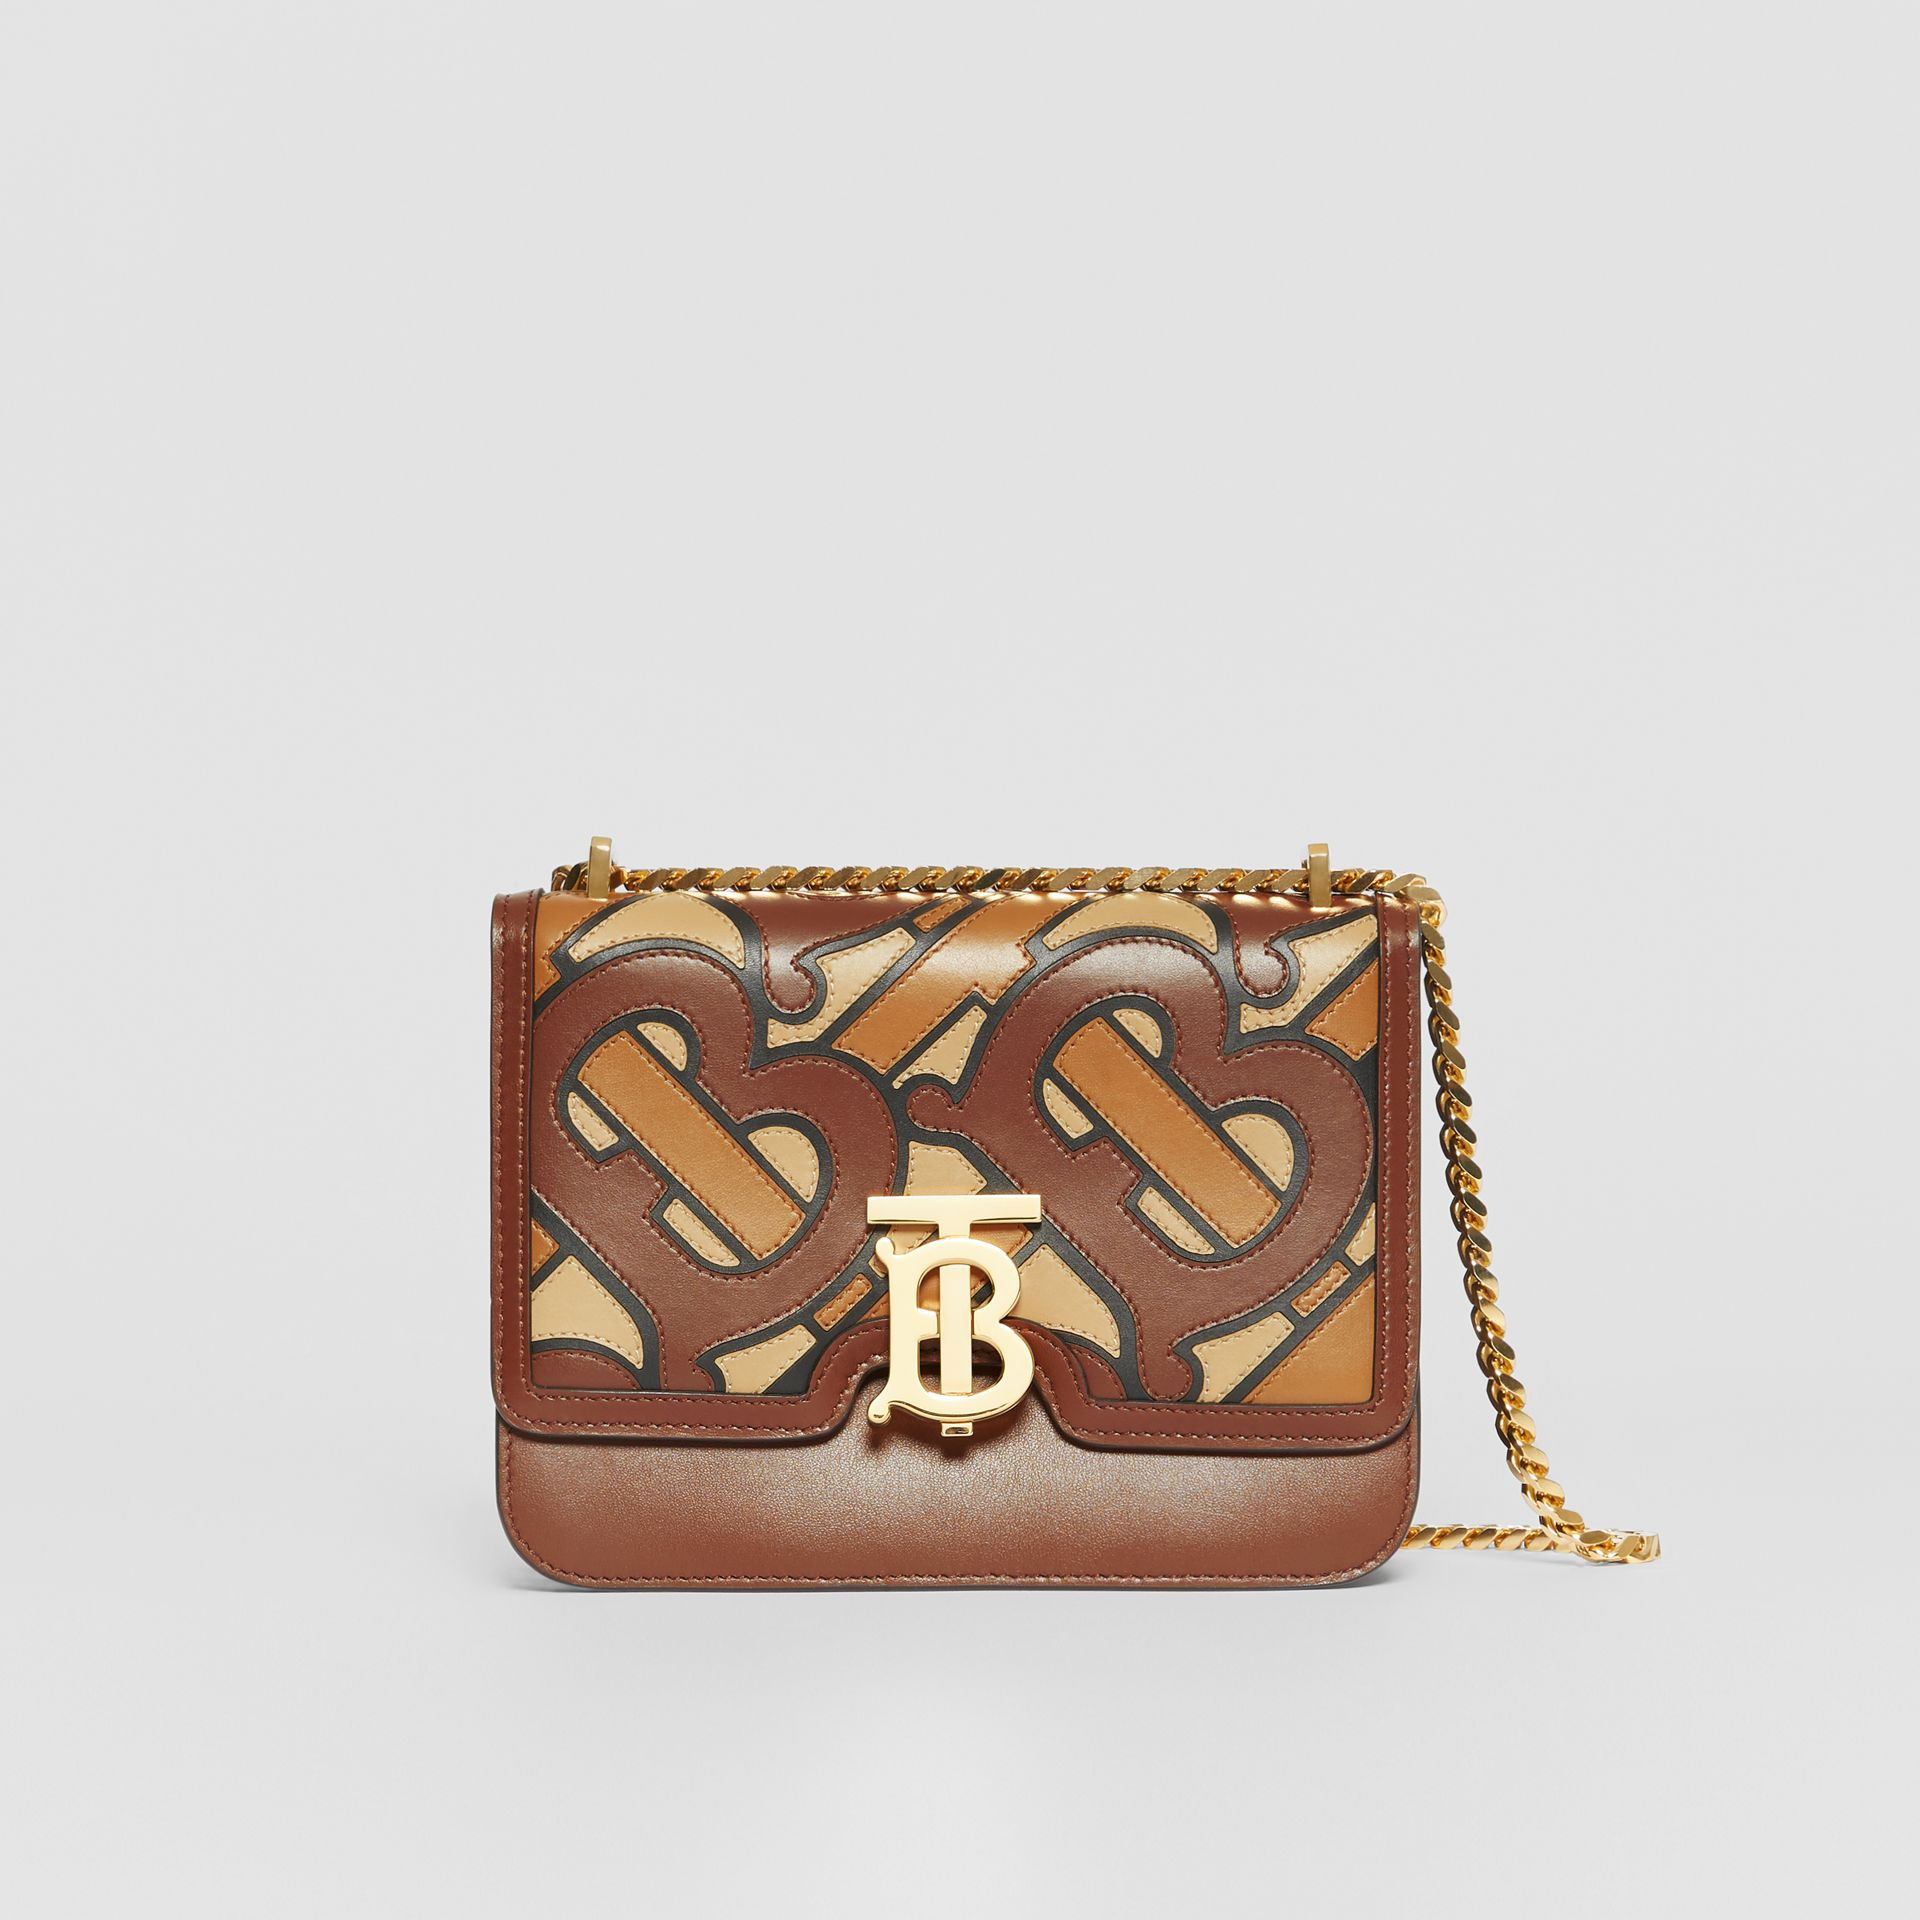 Small Monogram Appliqué Leather TB Bag in Brown - Women | Burberry United Kingdom - gallery image 0